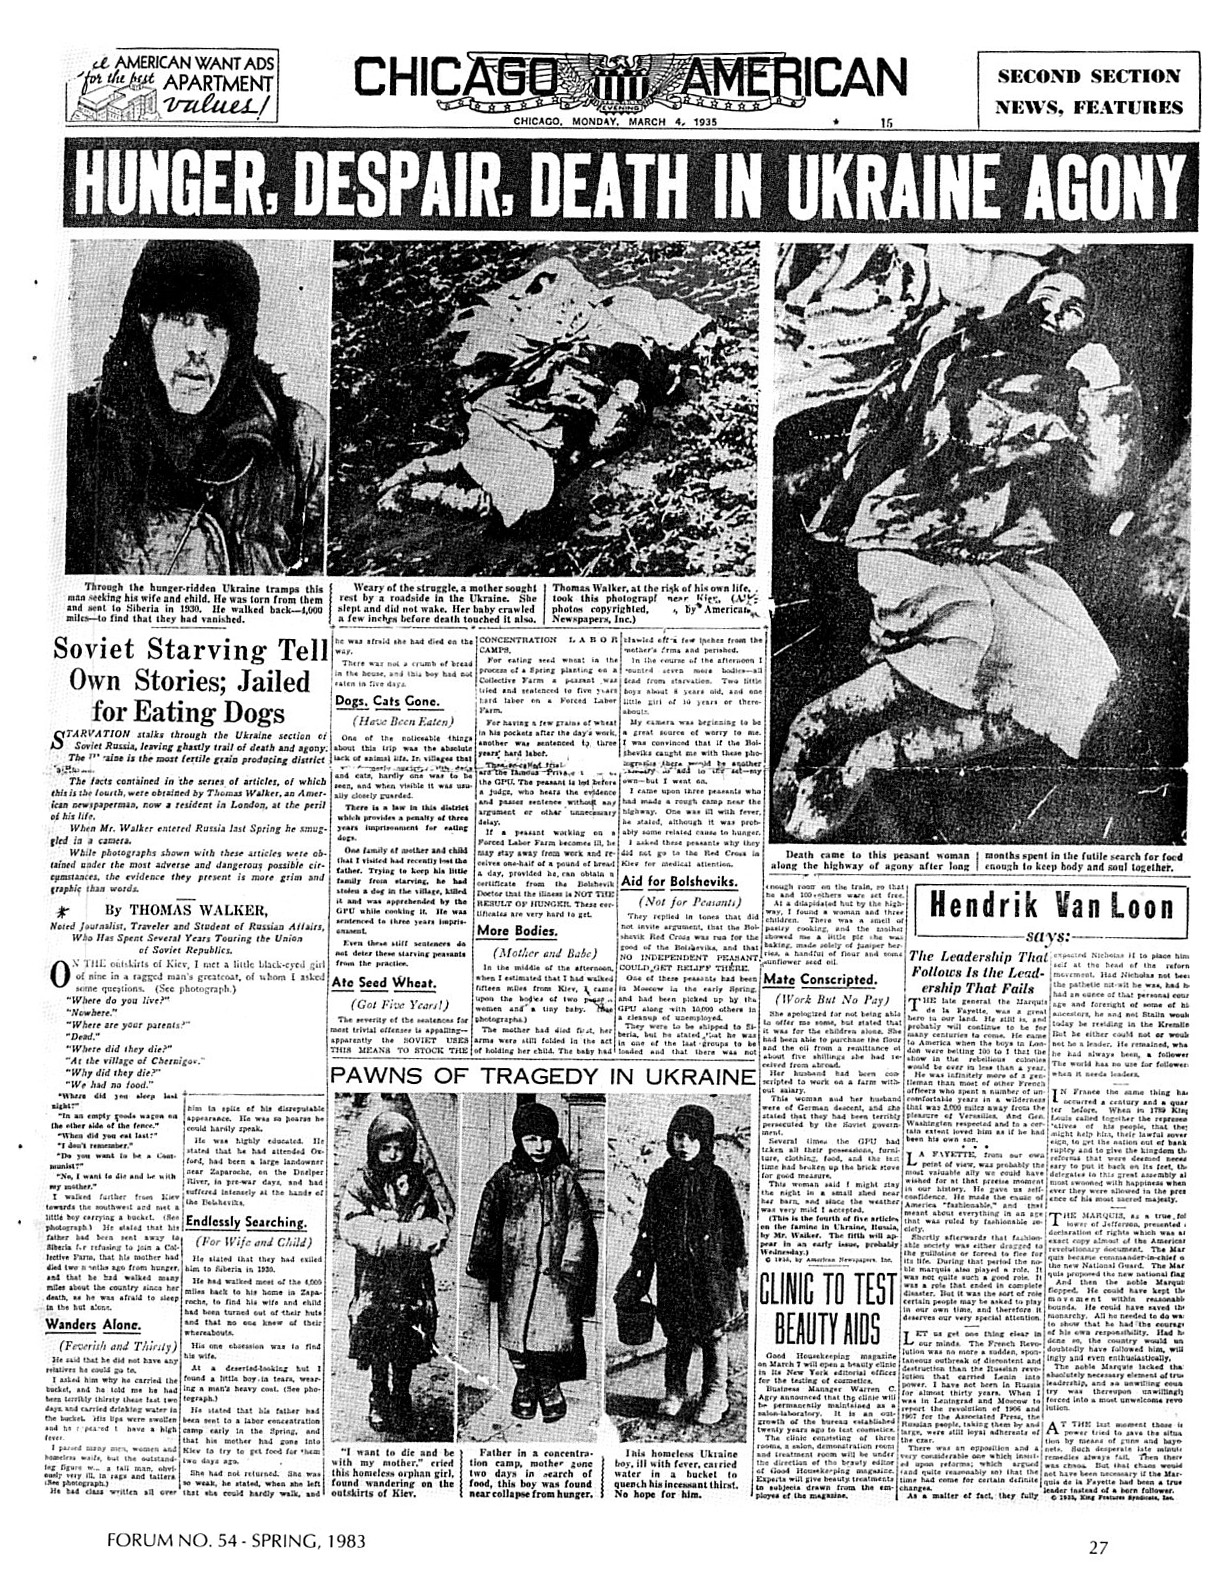 holodomor genocide essay Holodomor (ukrainian famine-genecide of 1932-33) information website featuring resources for both students and educators, survivor accounts, historical photos and.